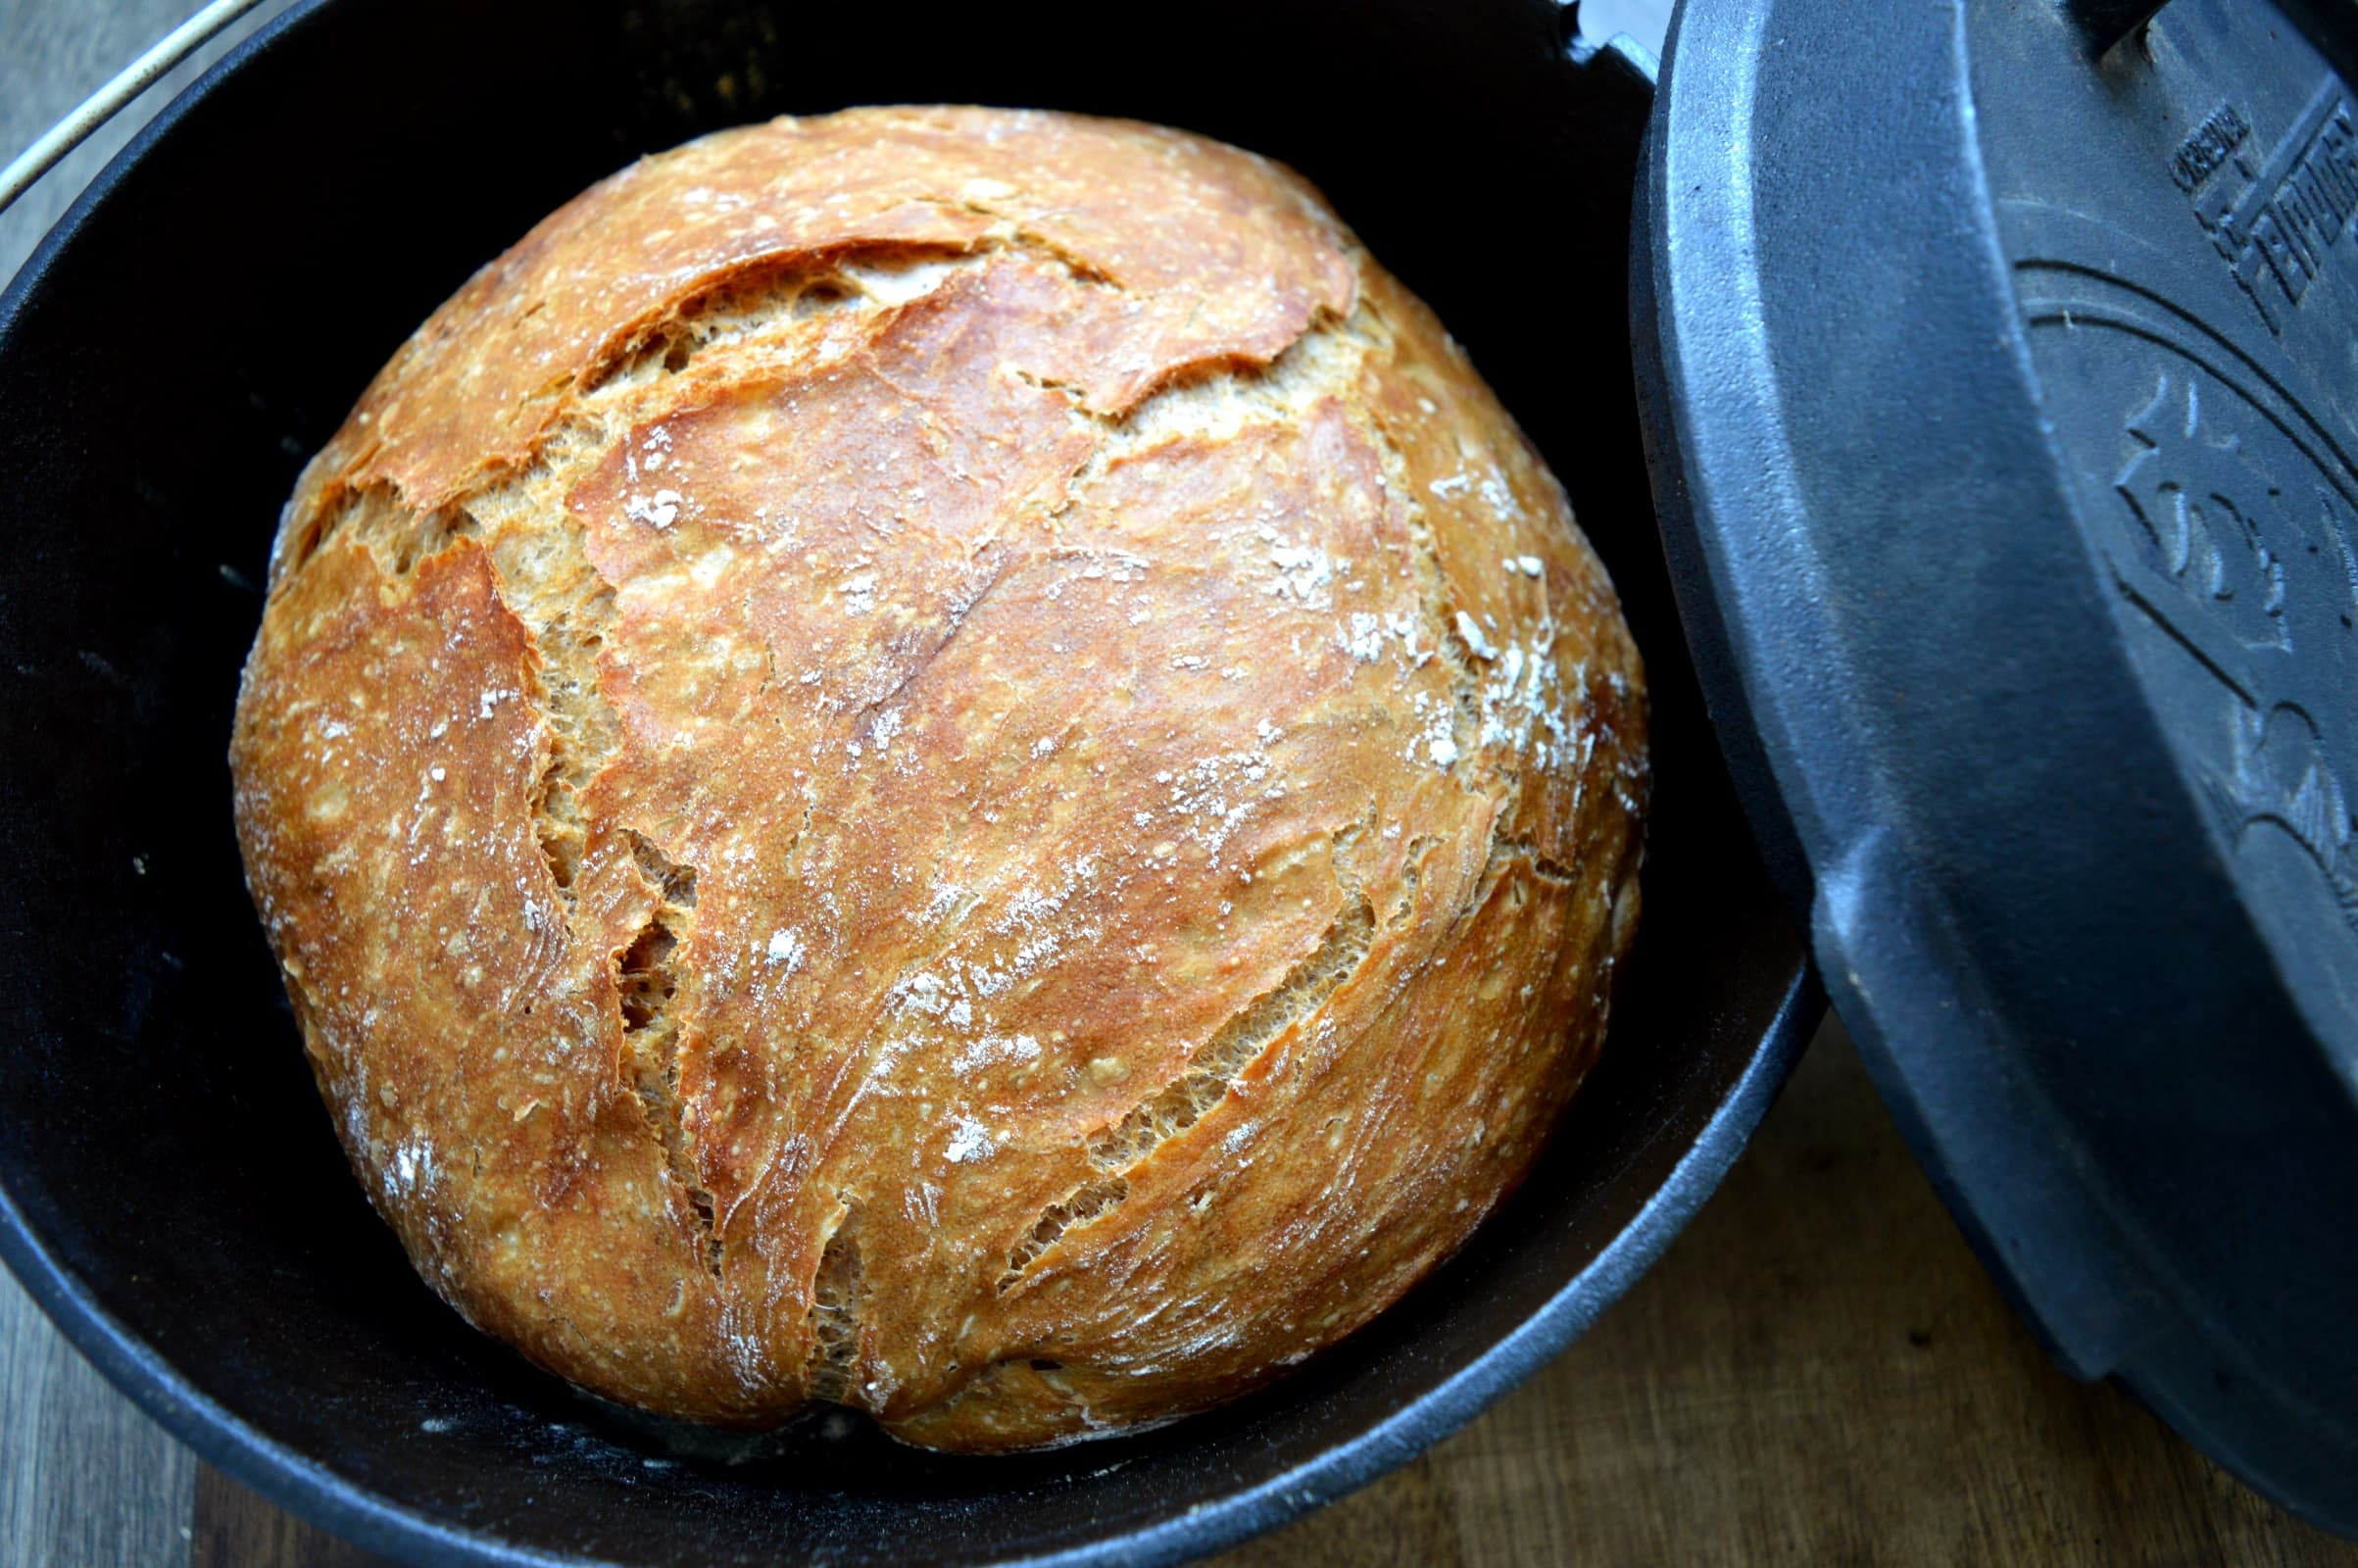 Krustenbrot Aus Dem Dutch Oven Bacon Zum Steak